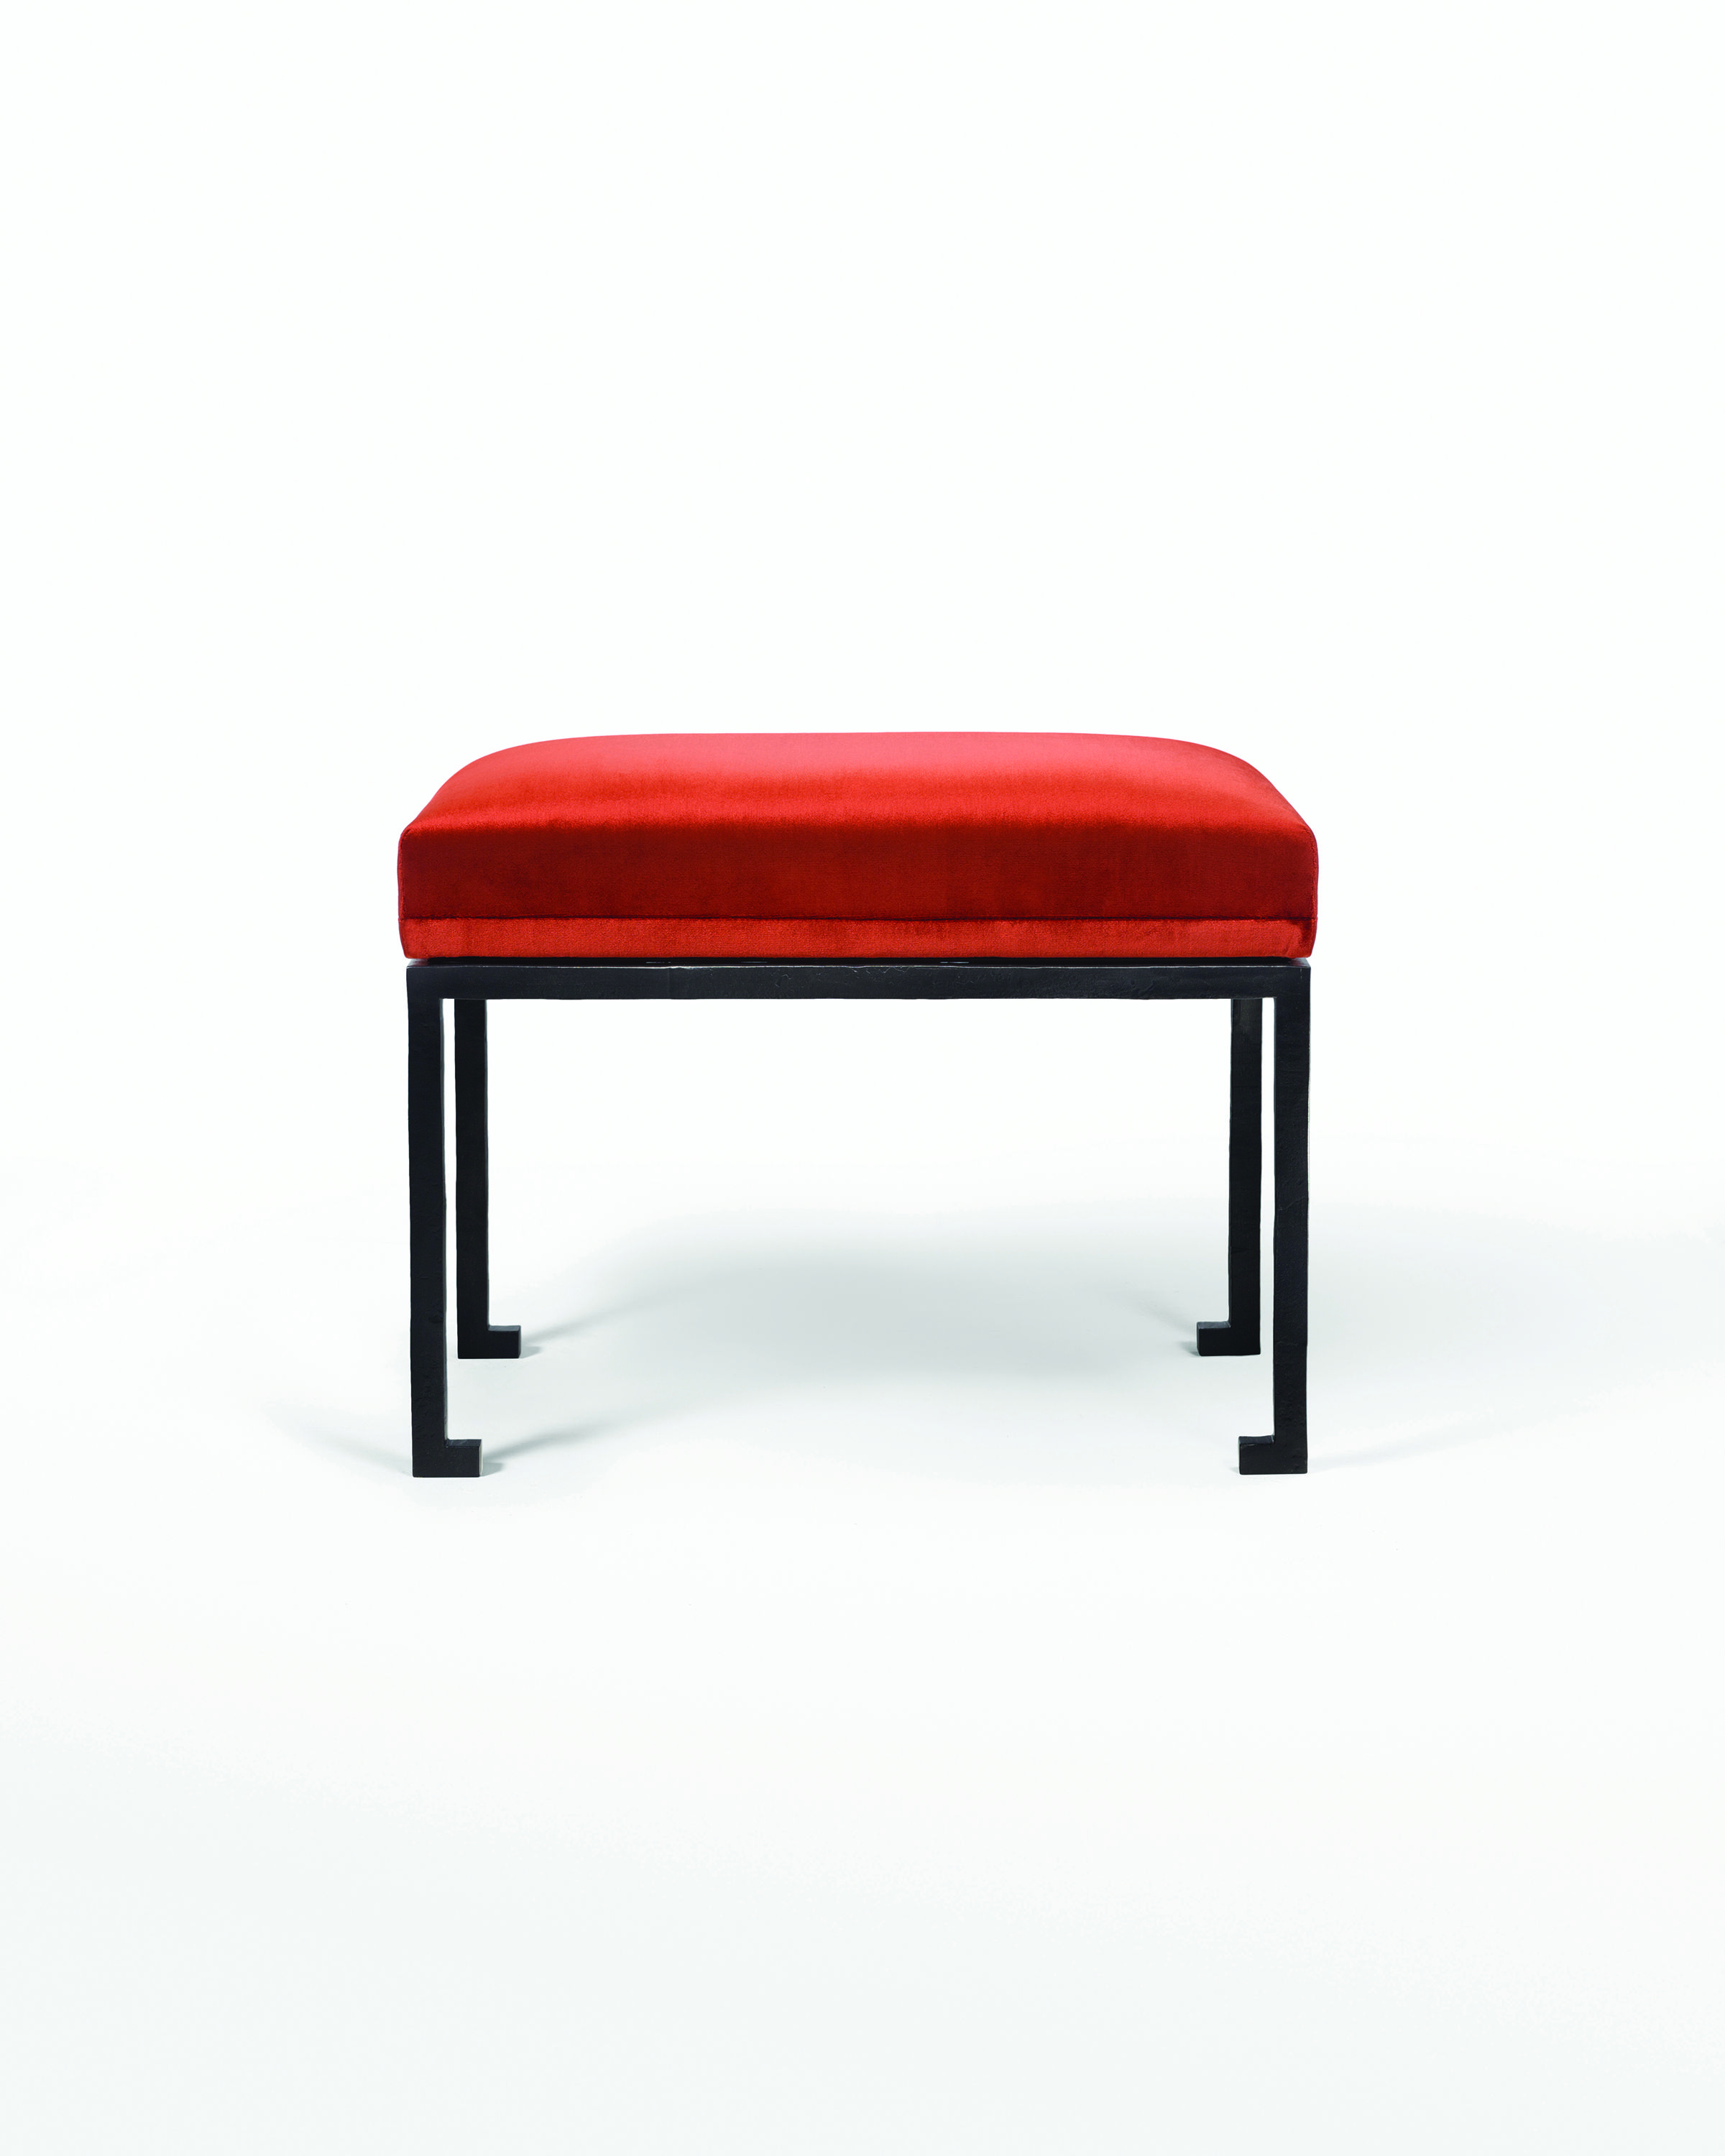 Banc Arno Edition Holly Hunt Bench Furniture Contemporary Furnishings Ottoman Bench